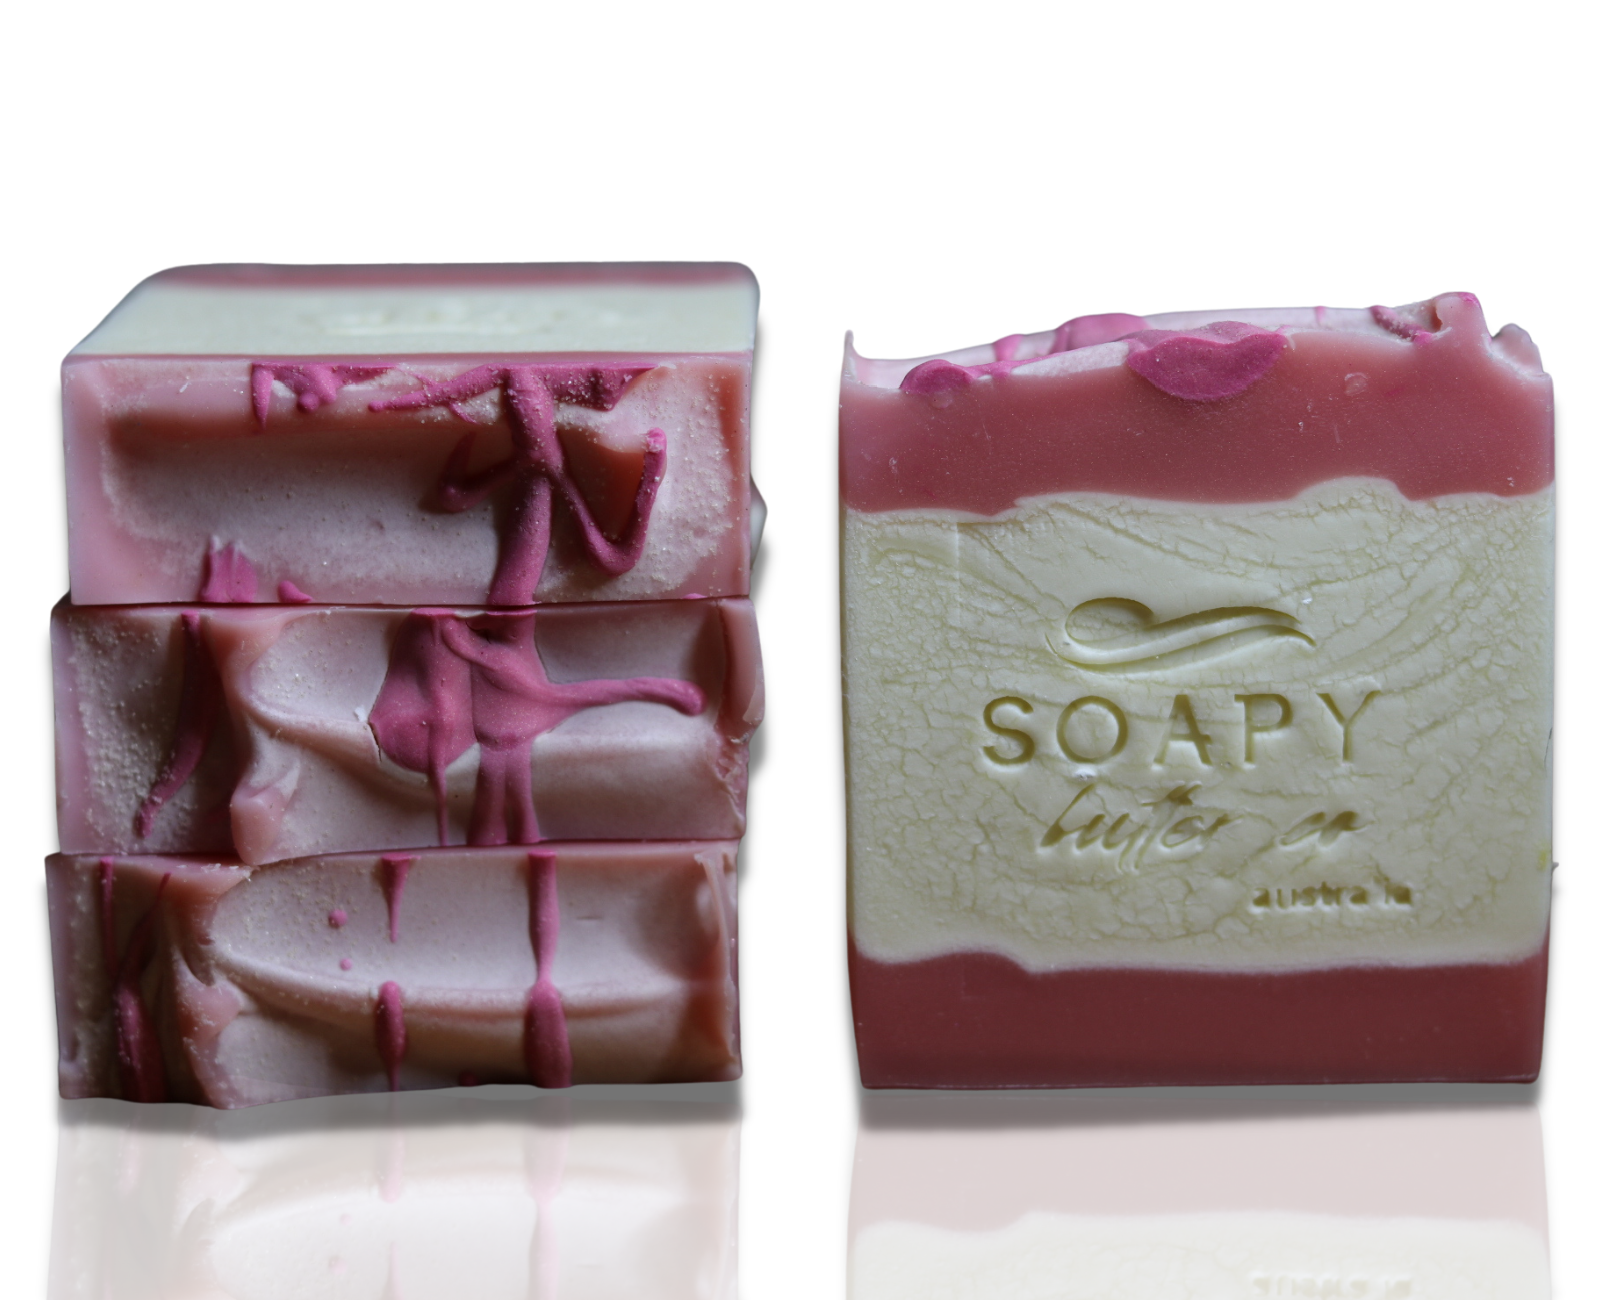 Soapy Butter Co rose quartz handmade soap